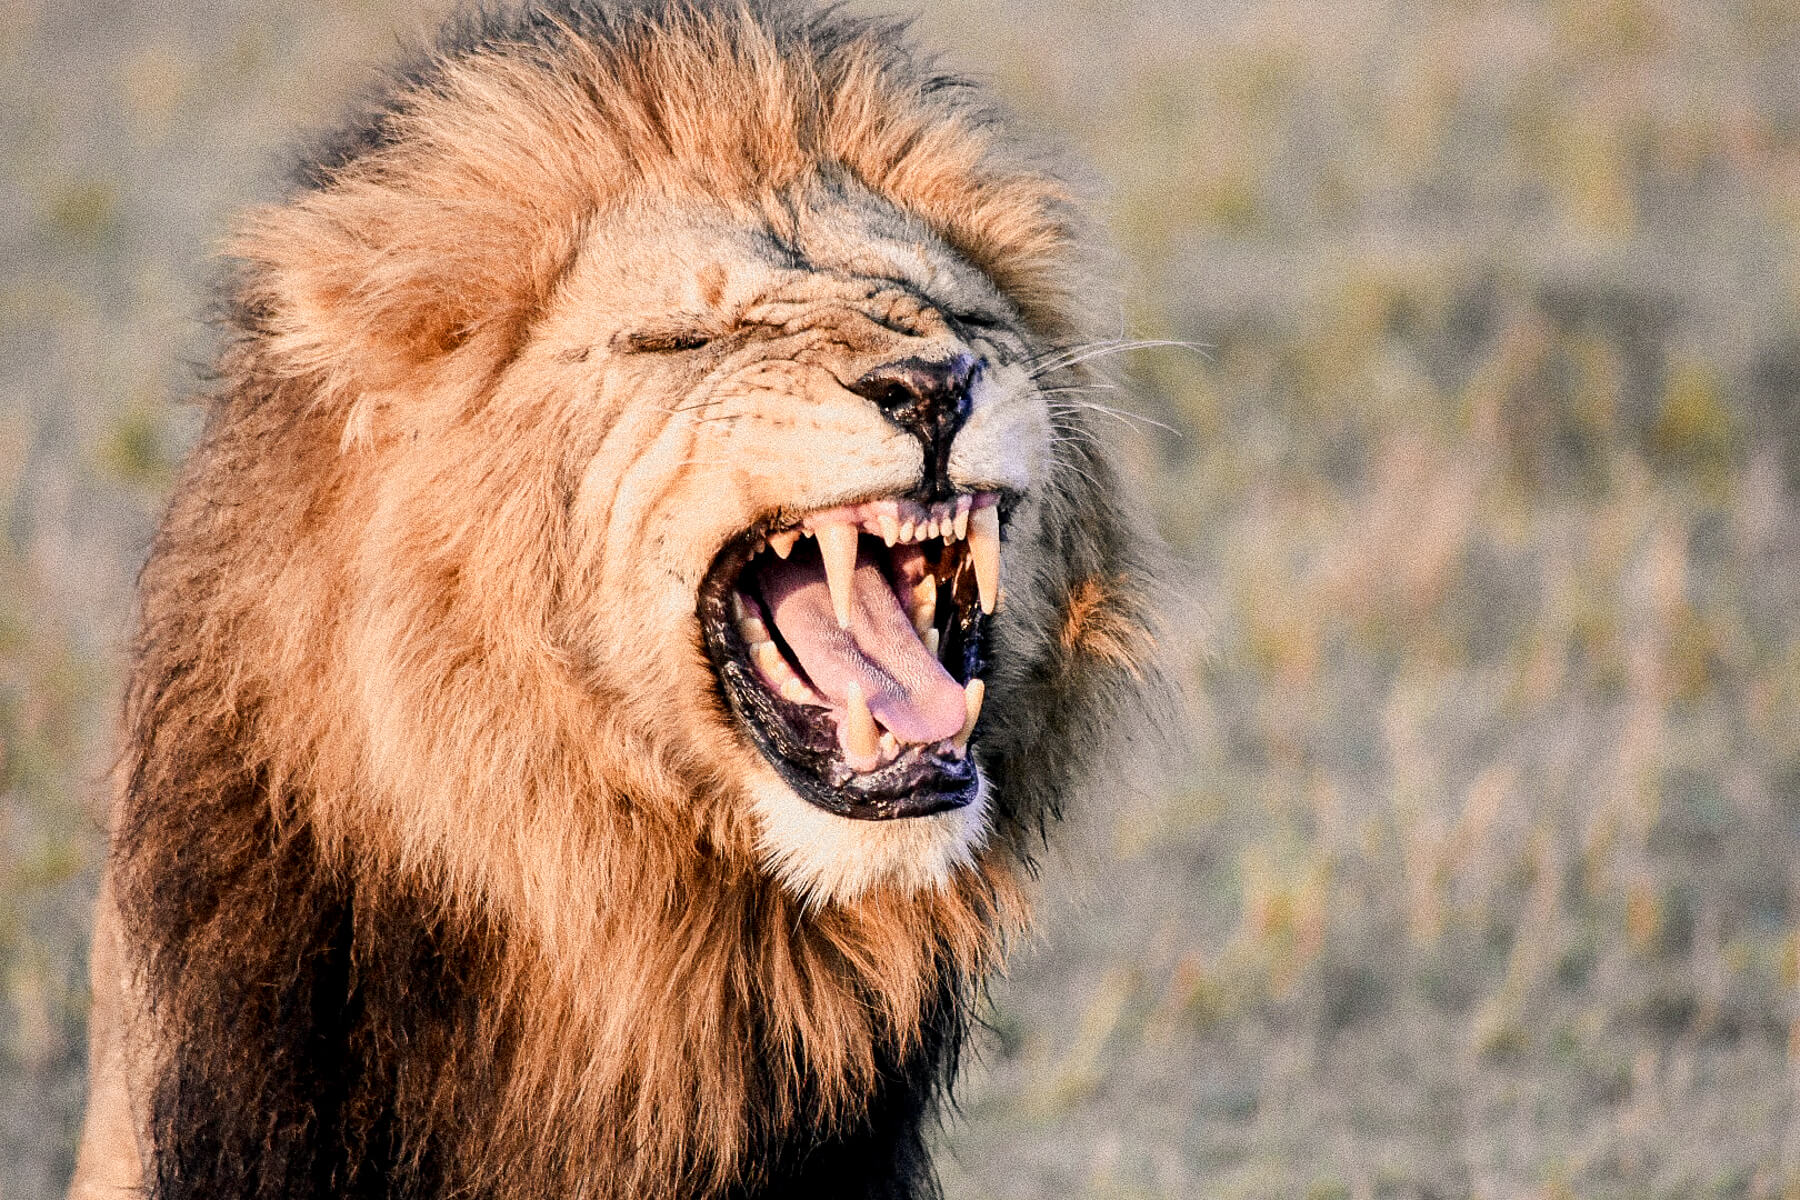 A male lion bearing his teeth after smelling a female lions spray